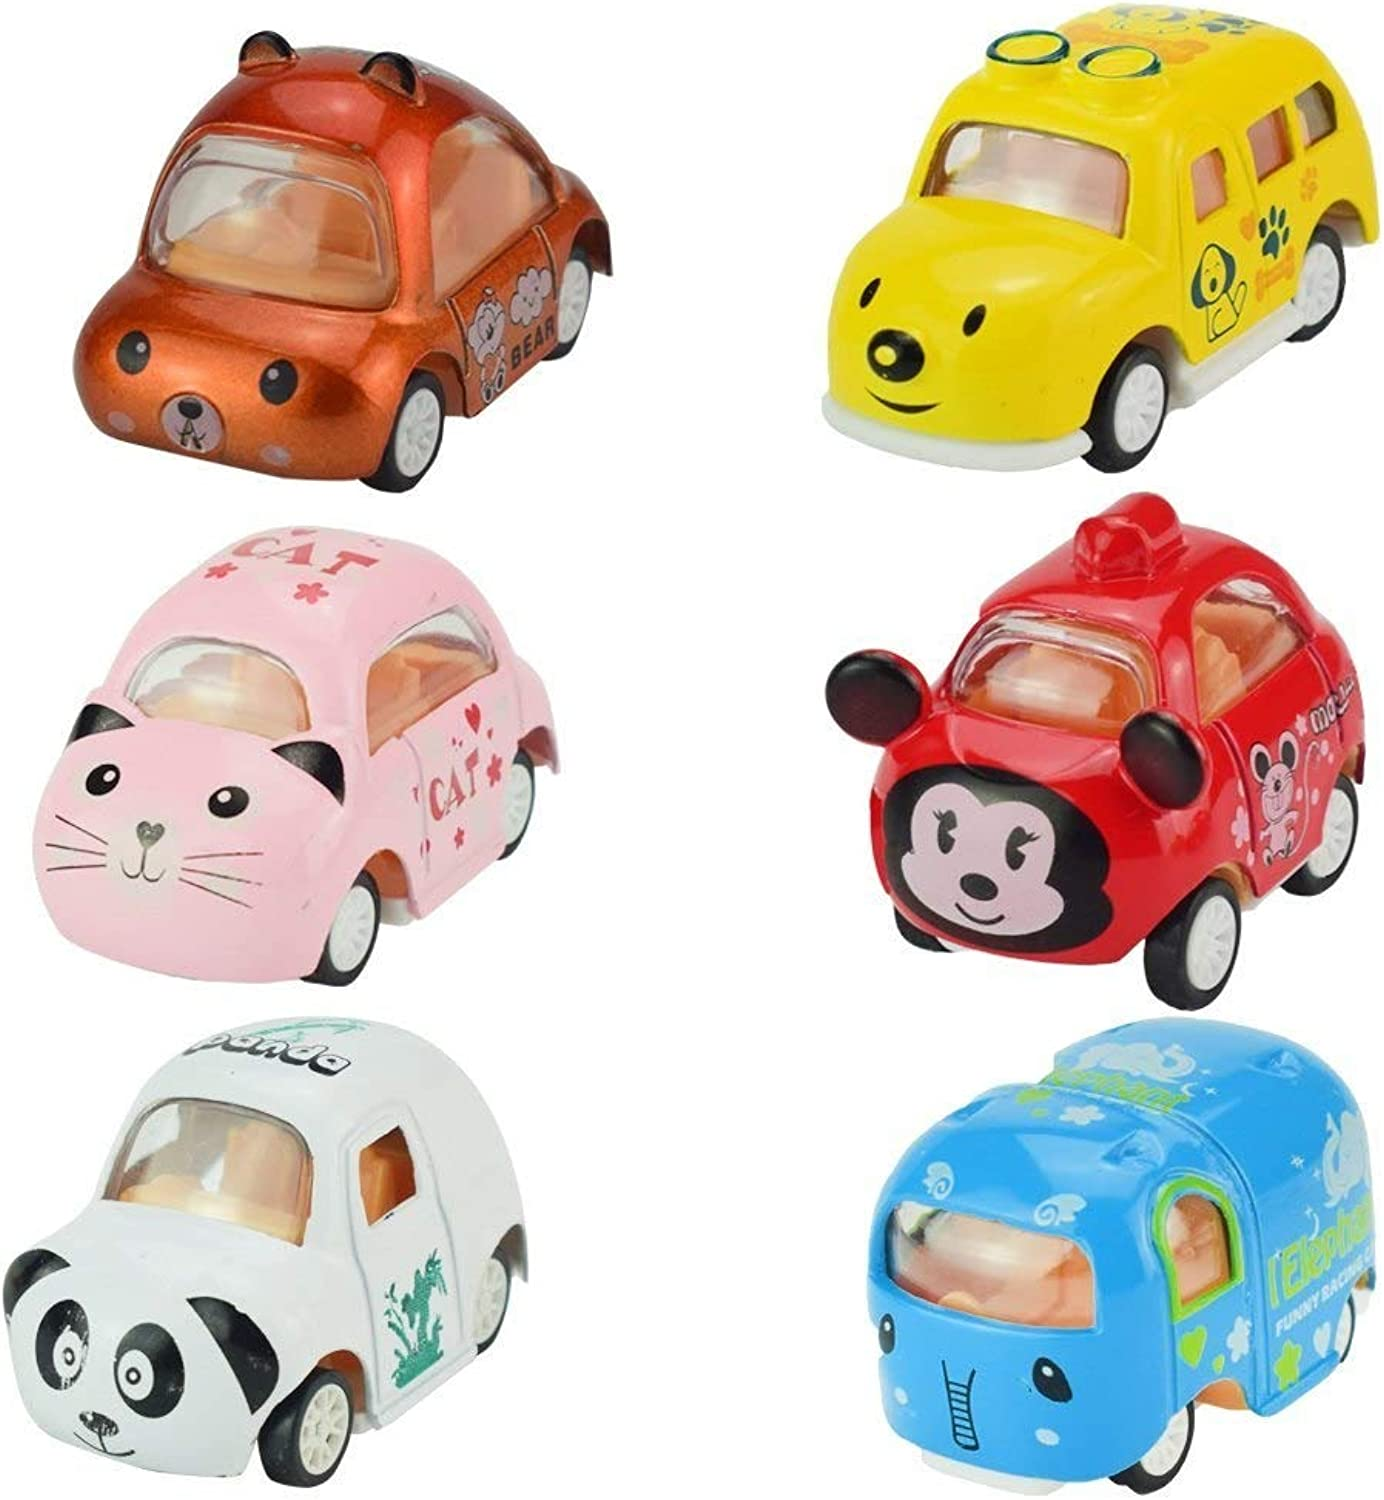 Generic Mini Truck Toys Alloy Diecast 1 64 Carton Animal Pull Back Vehicles 6 PCS Assorted Cars Play Set for Kids Gifts